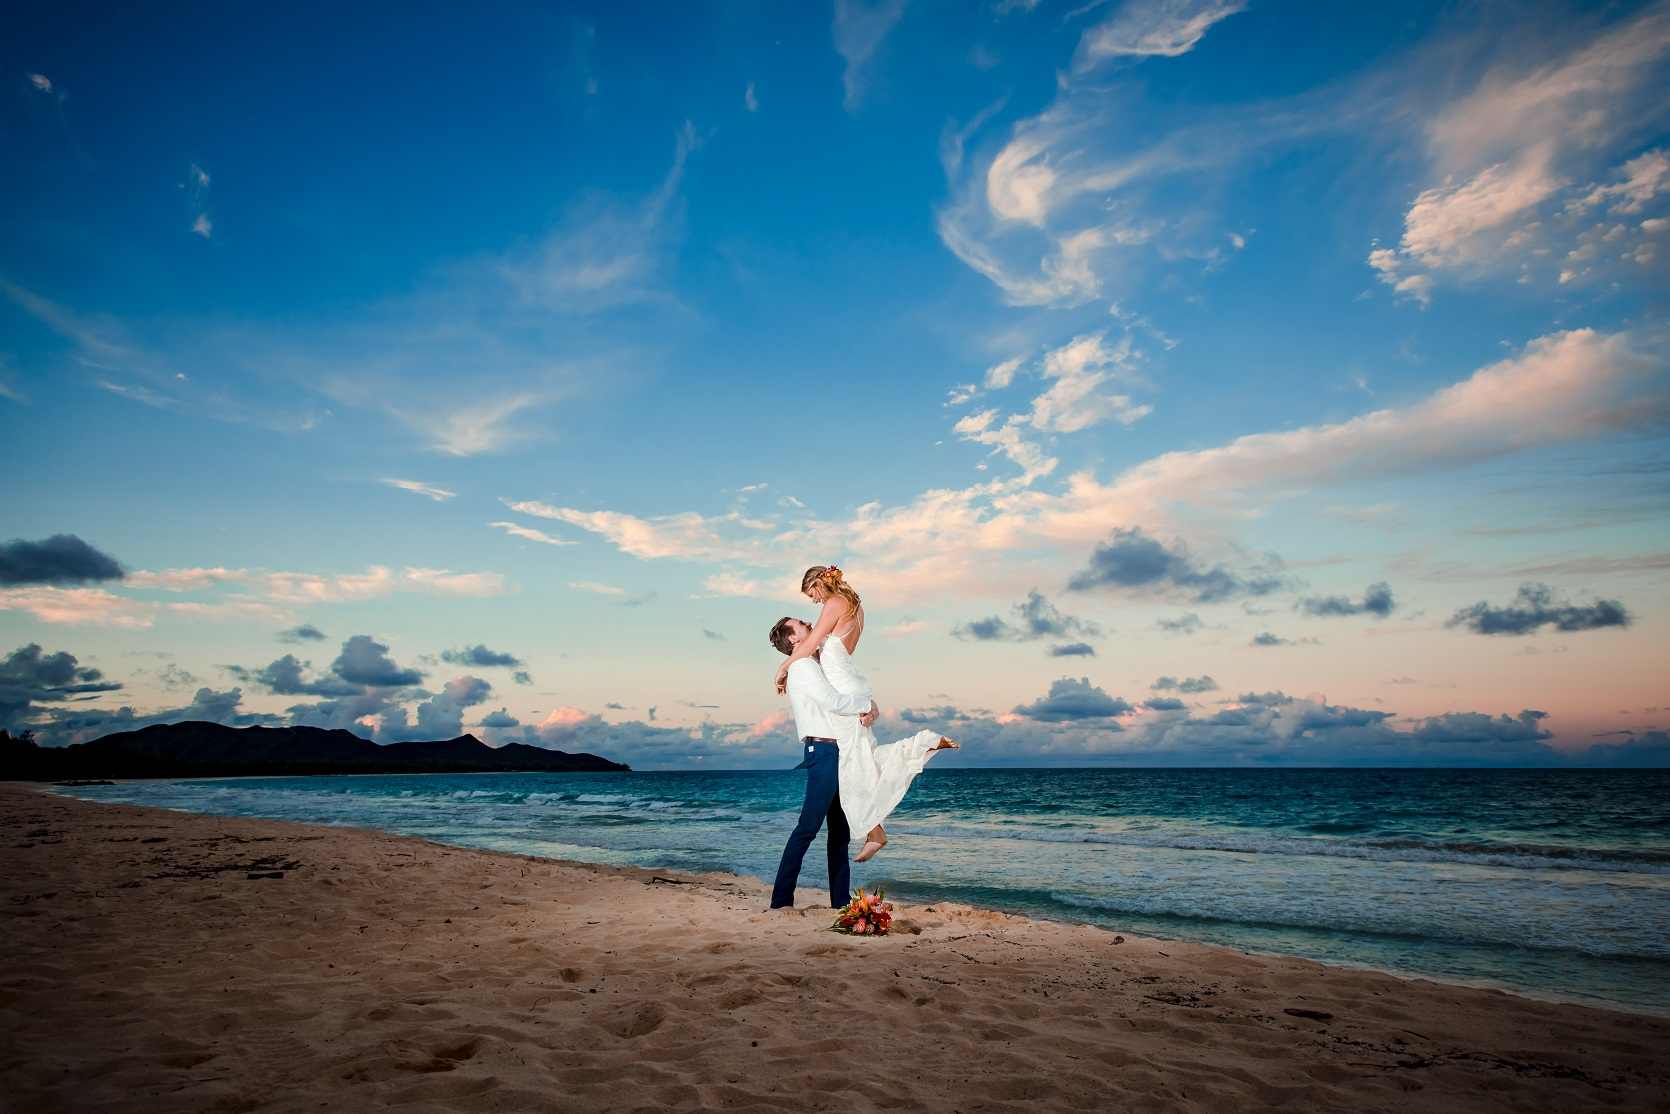 bride and groom wedding portrait sunset beach oahu